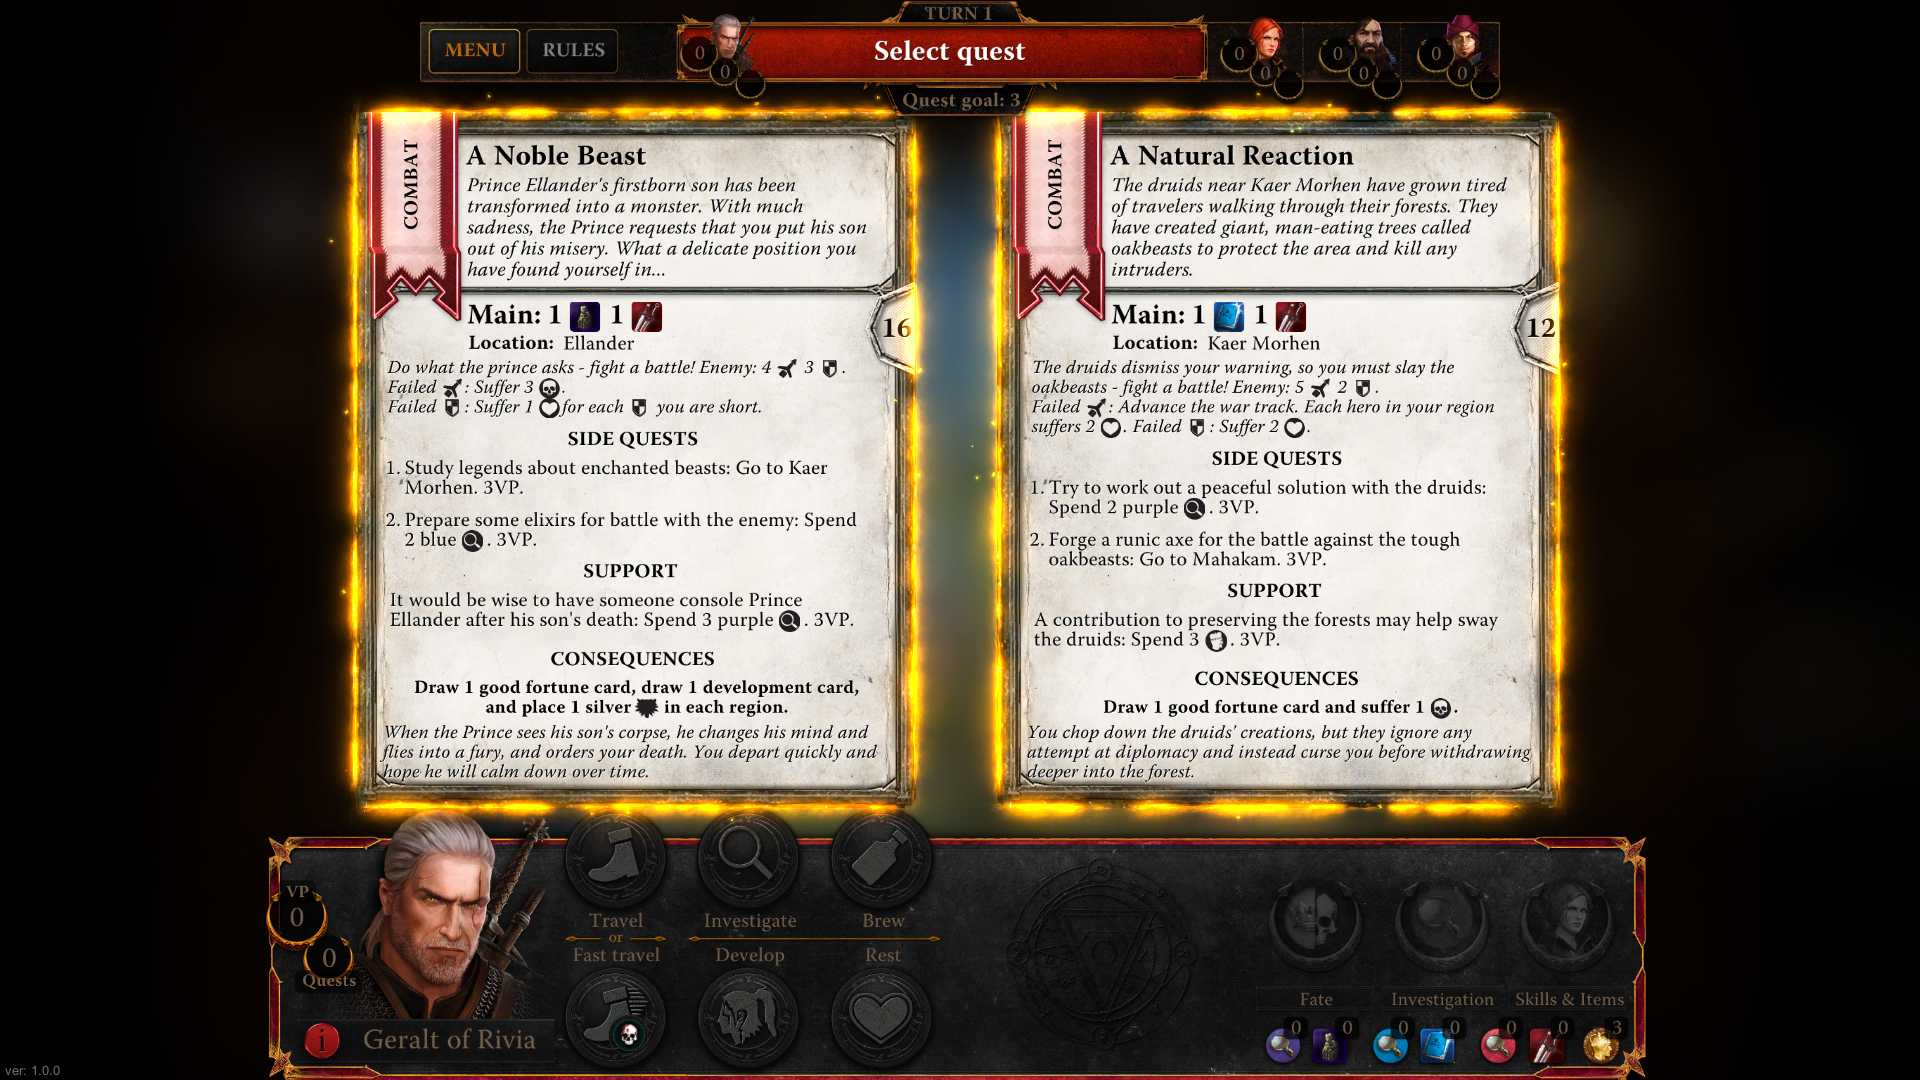 the-witcher-adventure-game-quests.jpg